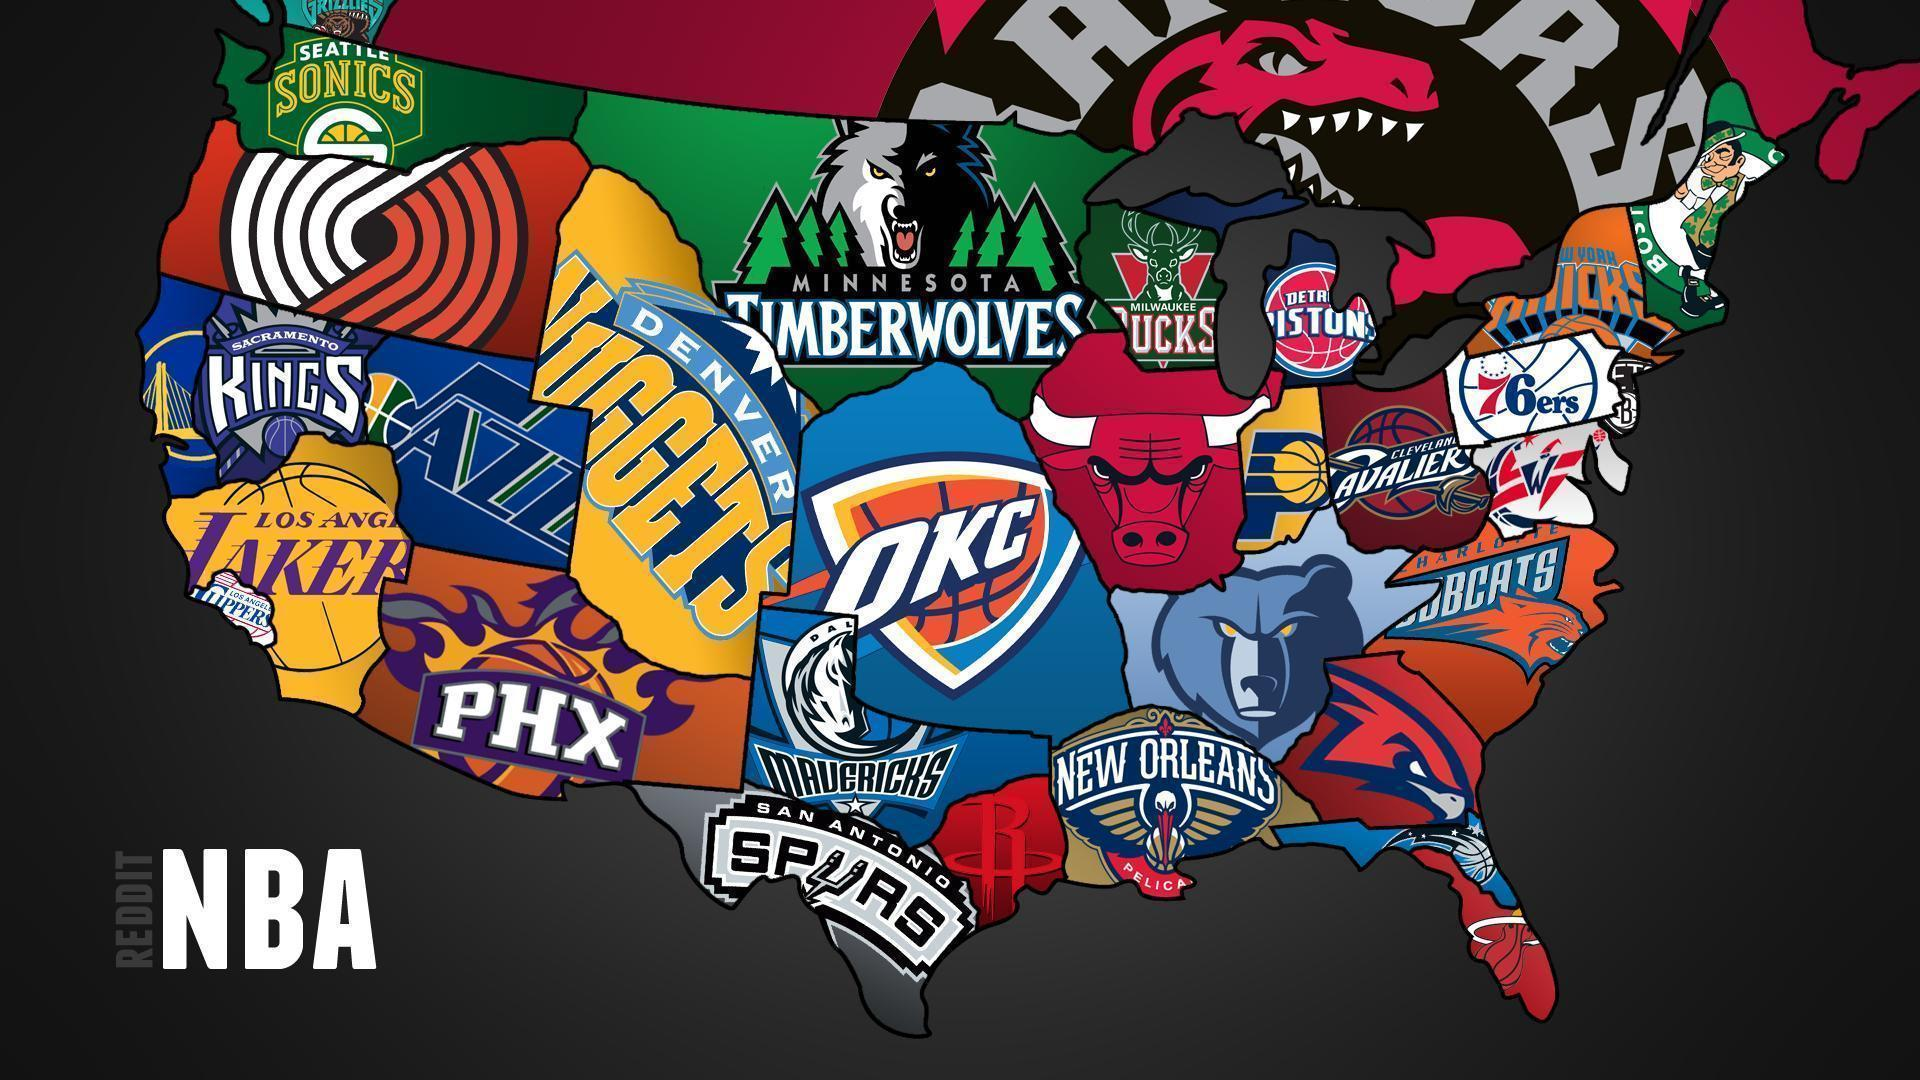 NBA Team Logos Wallpapers 2016 - Wallpaper Cave